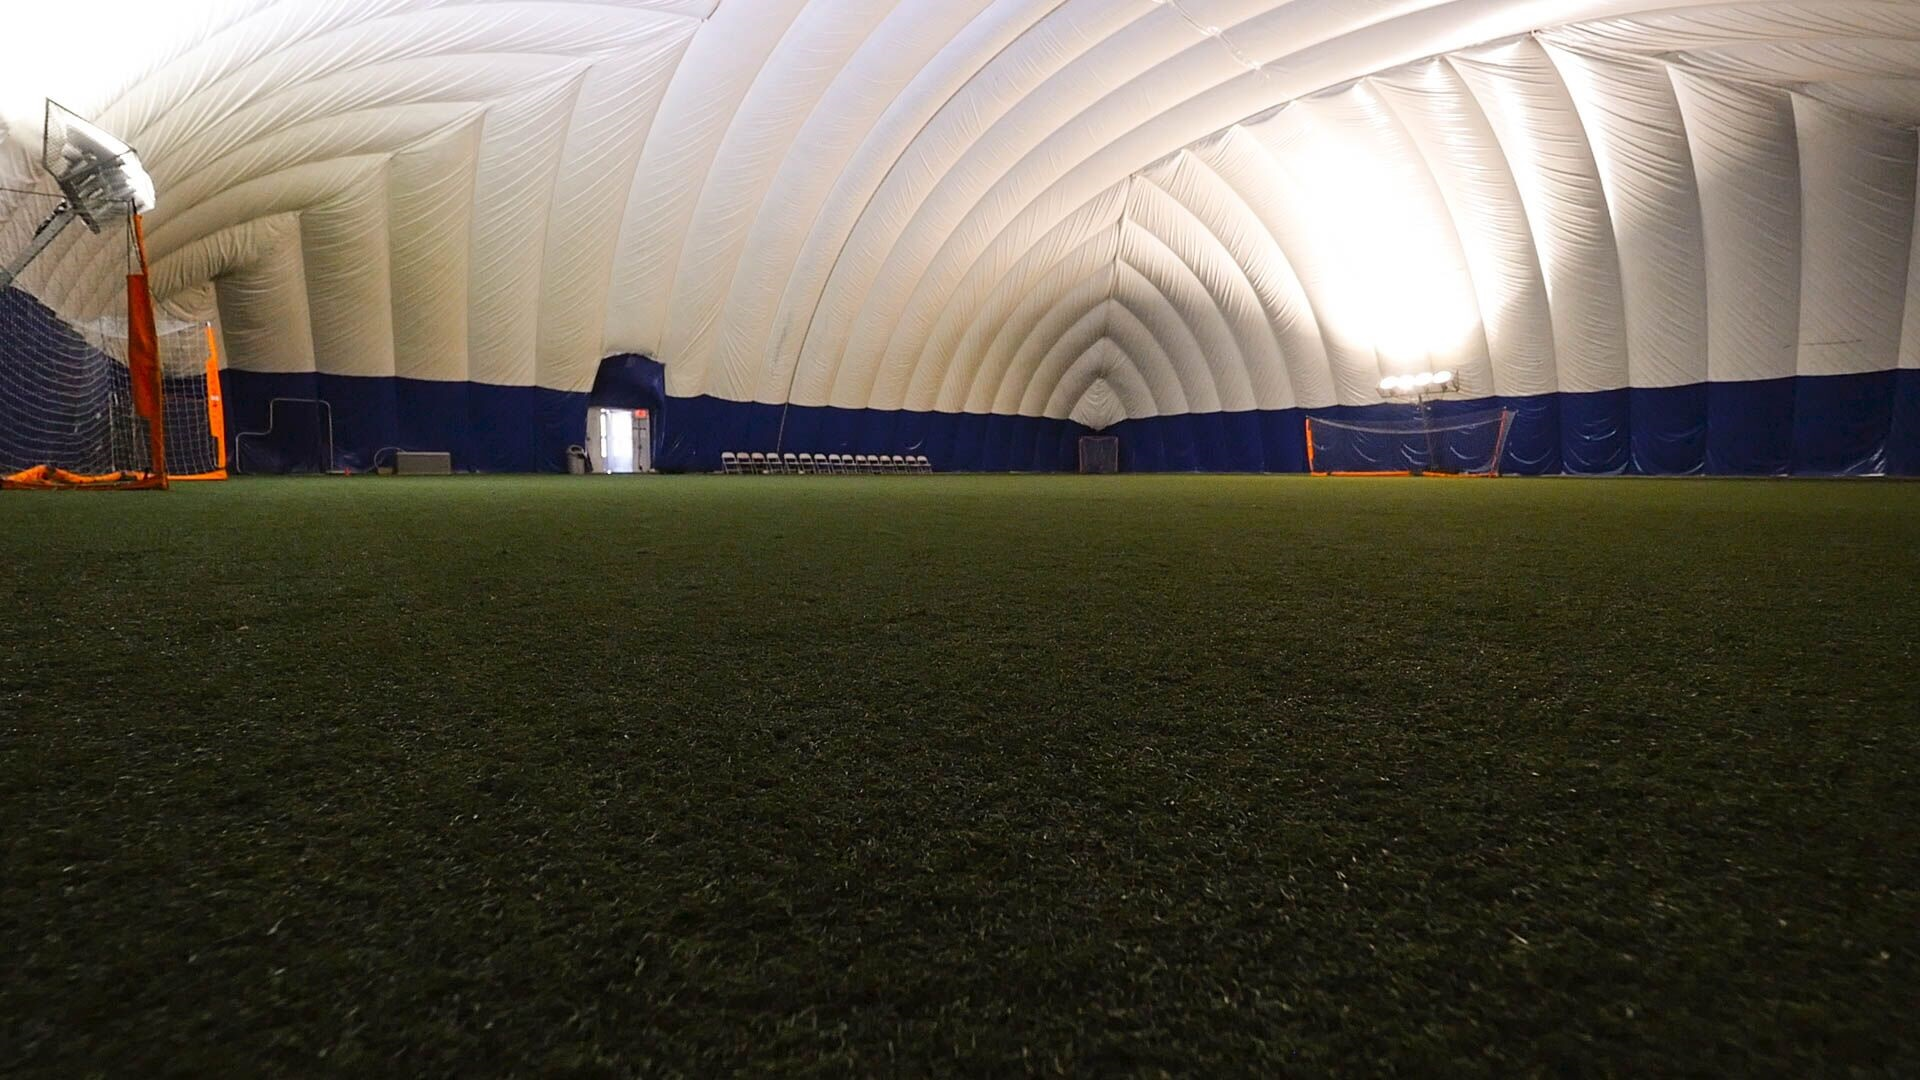 Bubble Dome Field - Rates:Dimensions:How to book a time slot on this field: